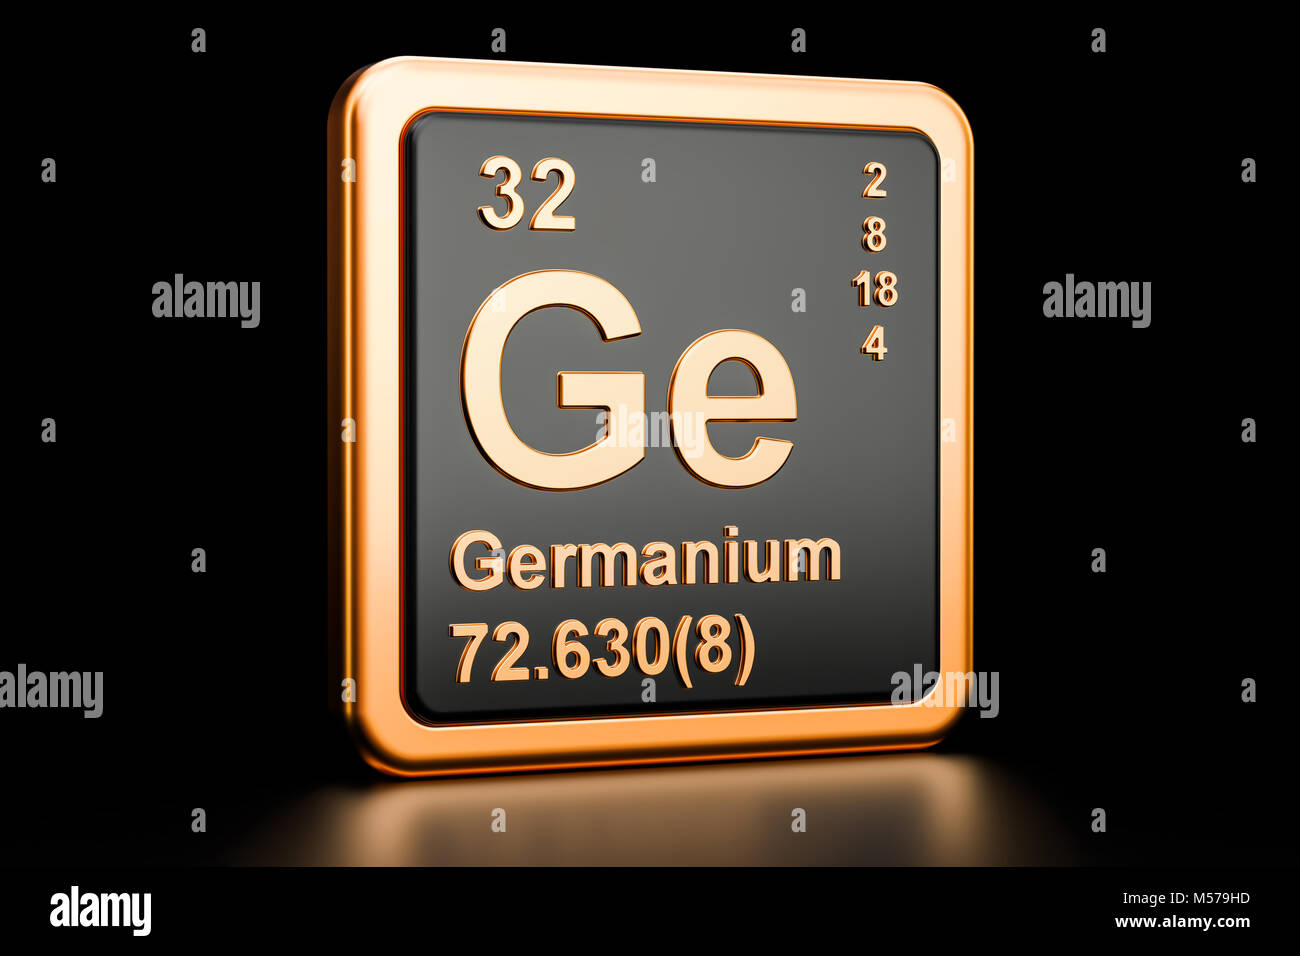 Germanium ge stock photos germanium ge stock images alamy germanium ge chemical element 3d rendering isolated on black background stock image biocorpaavc Gallery